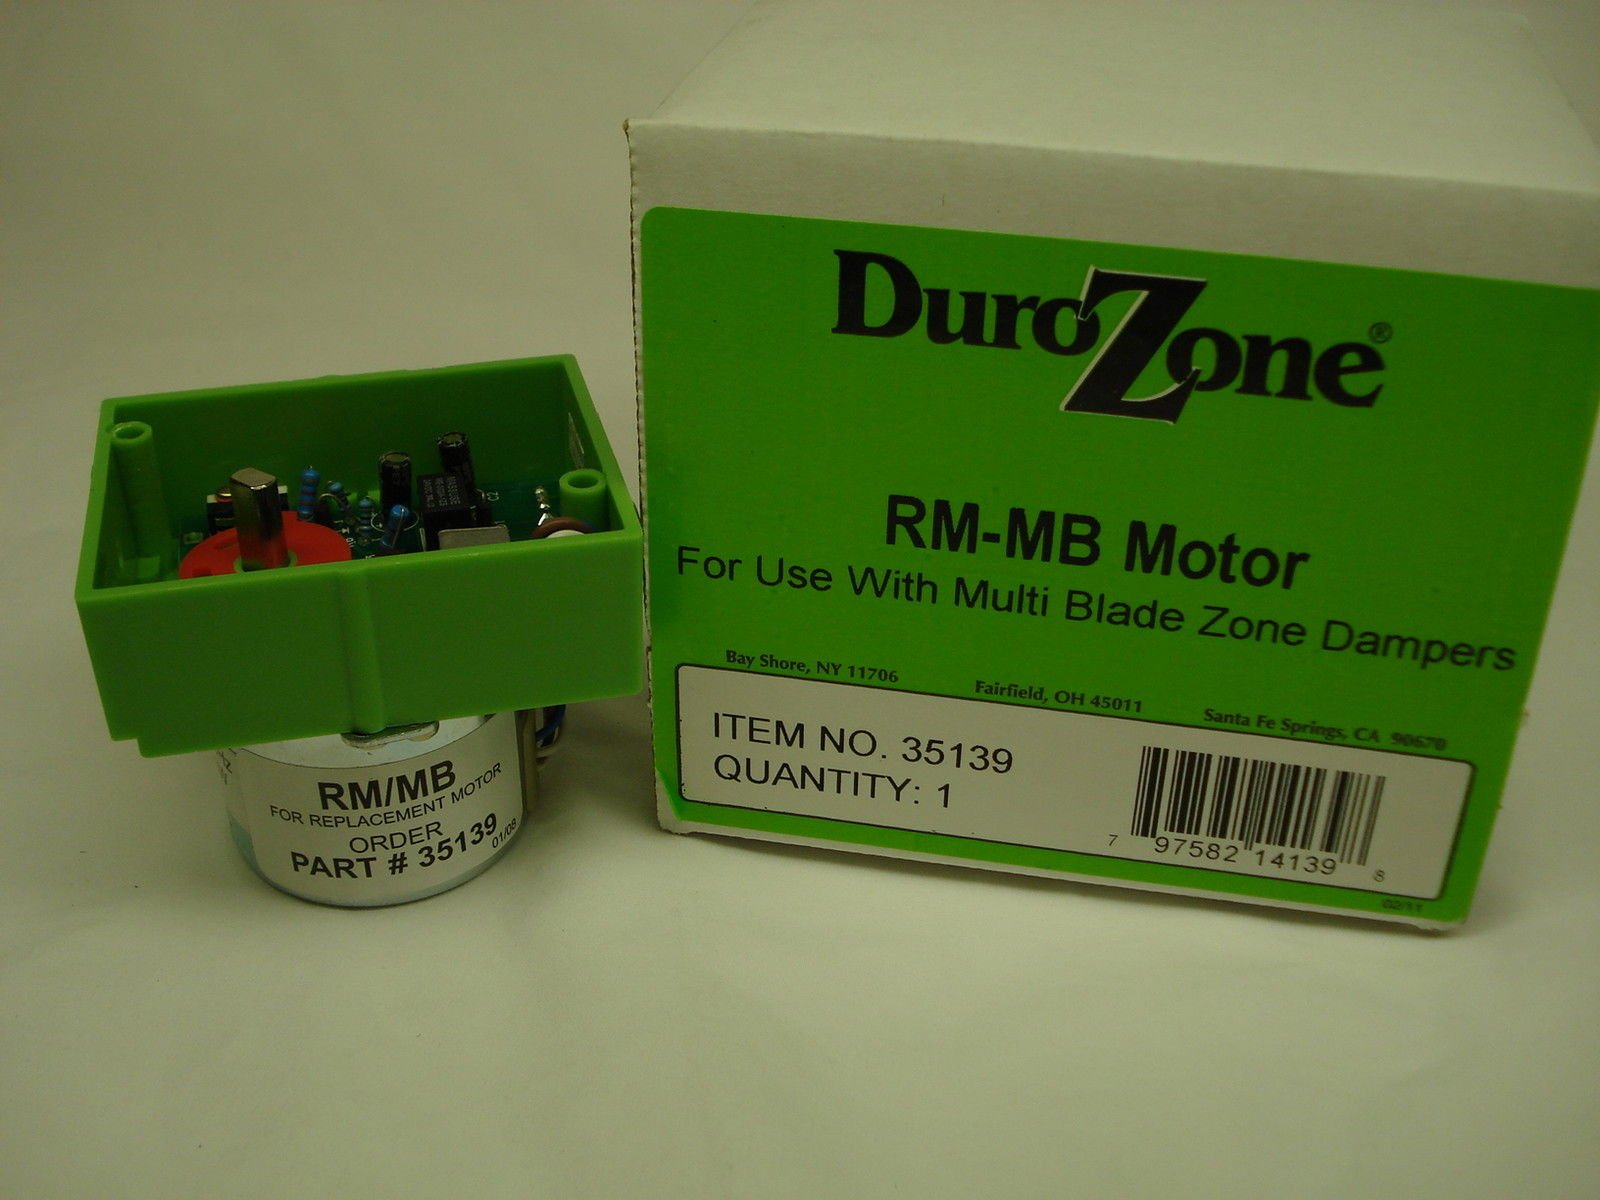 DuroZone RM-MB Replacement Damper Motor # 35139 by Duro Zone (Image #2)